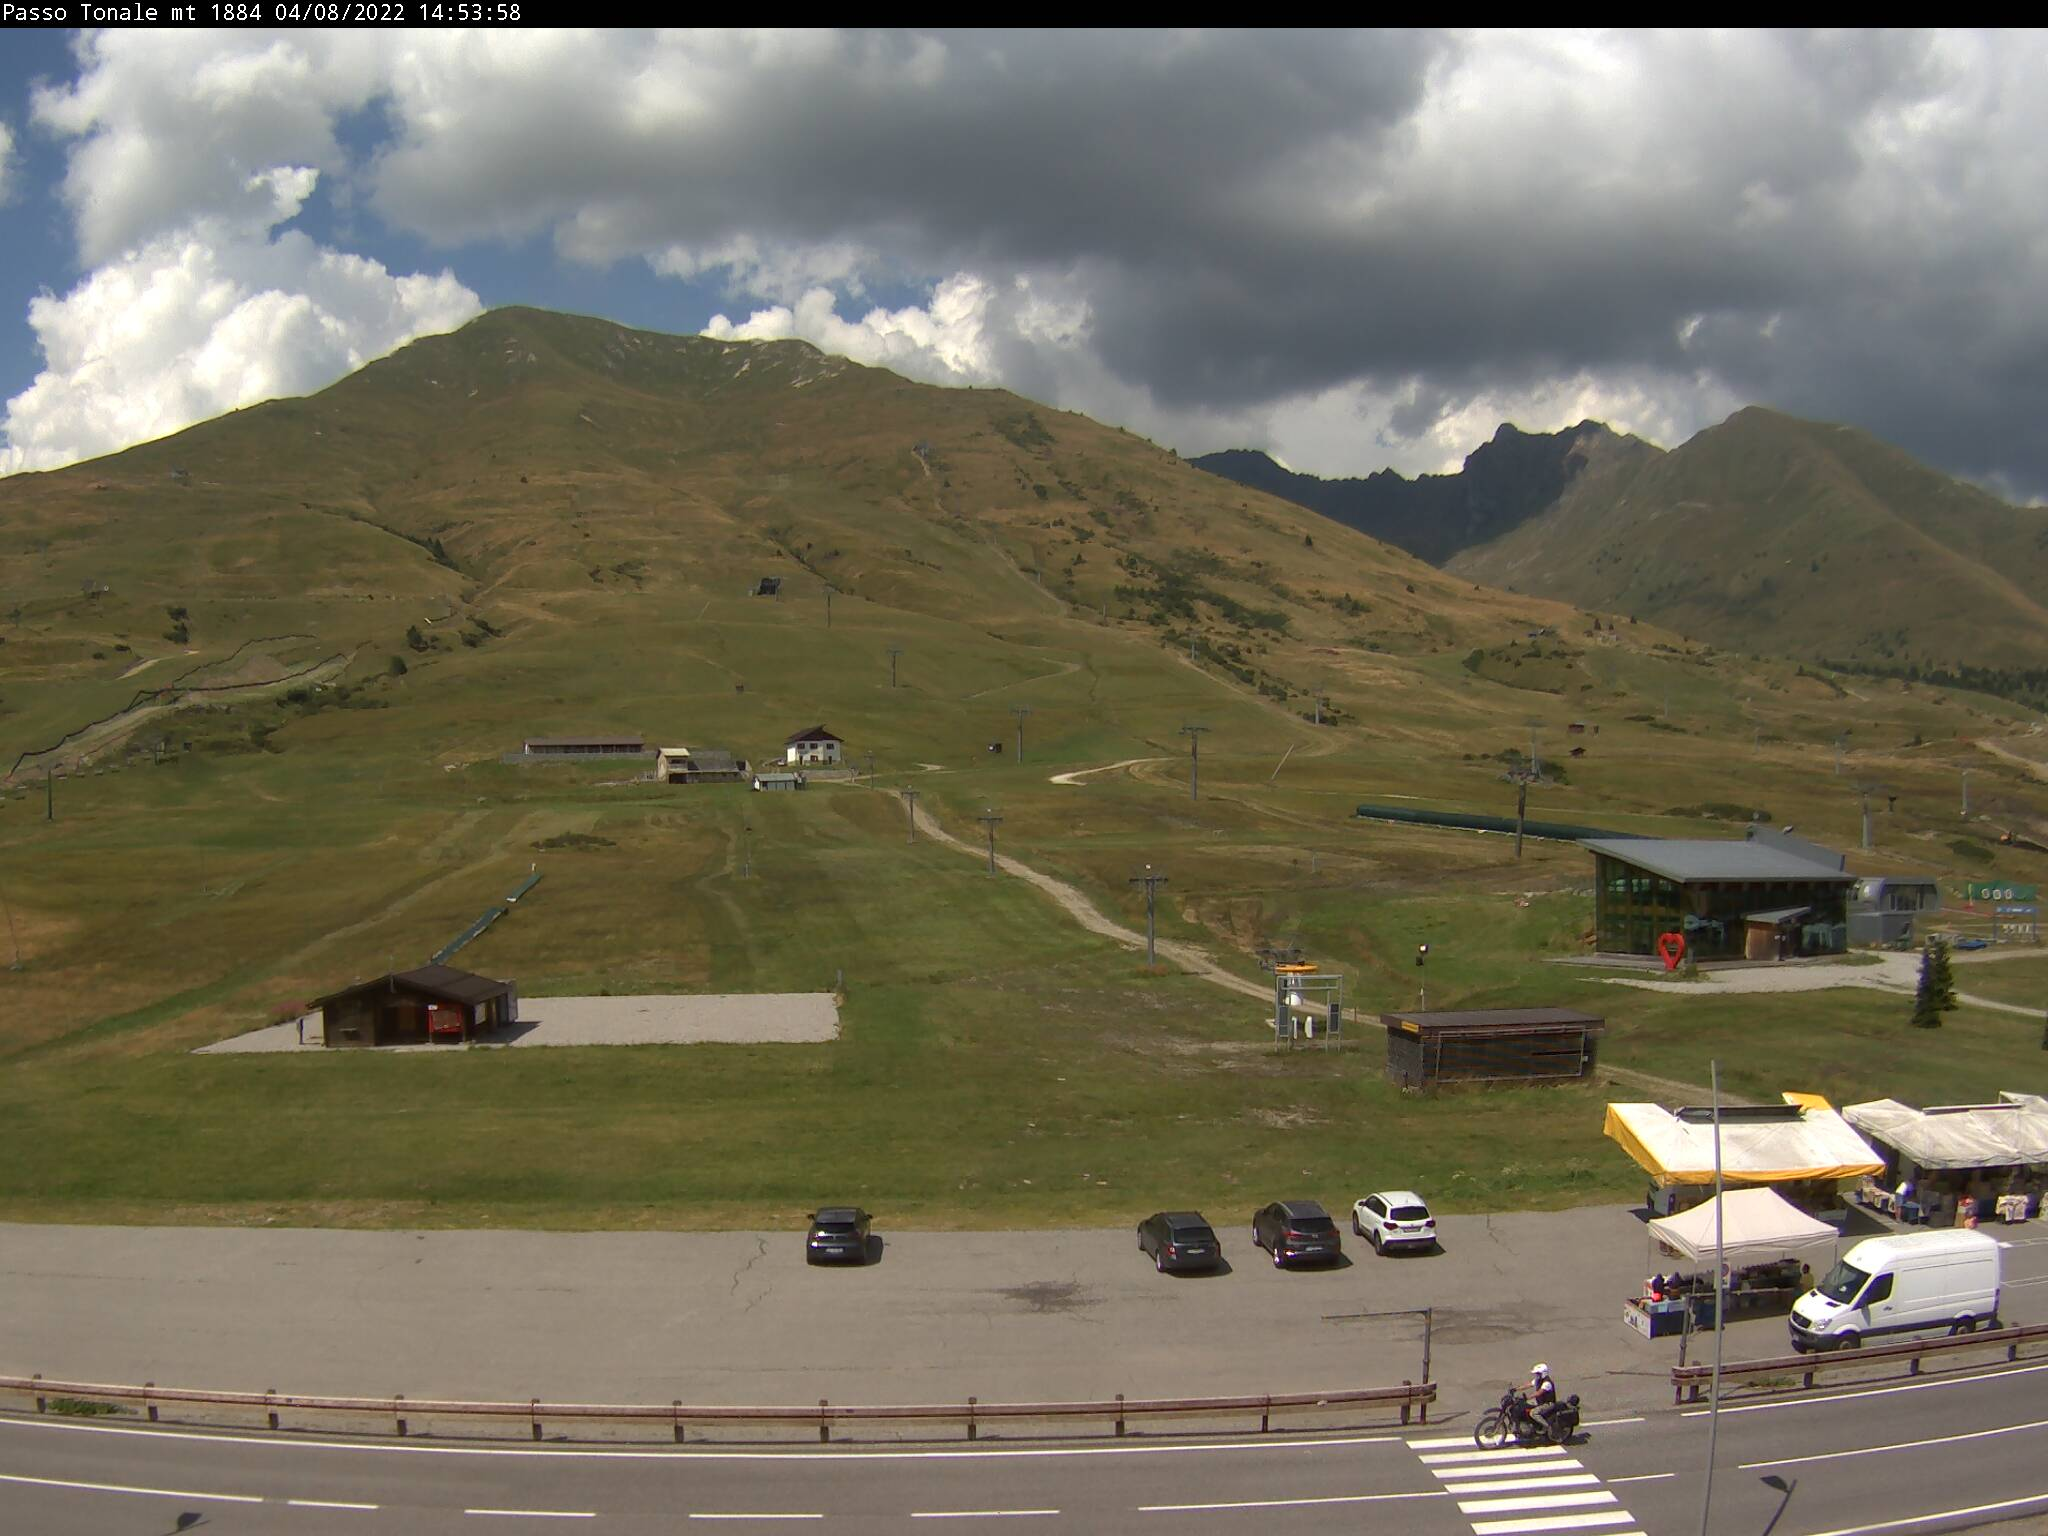 Webcam tonale